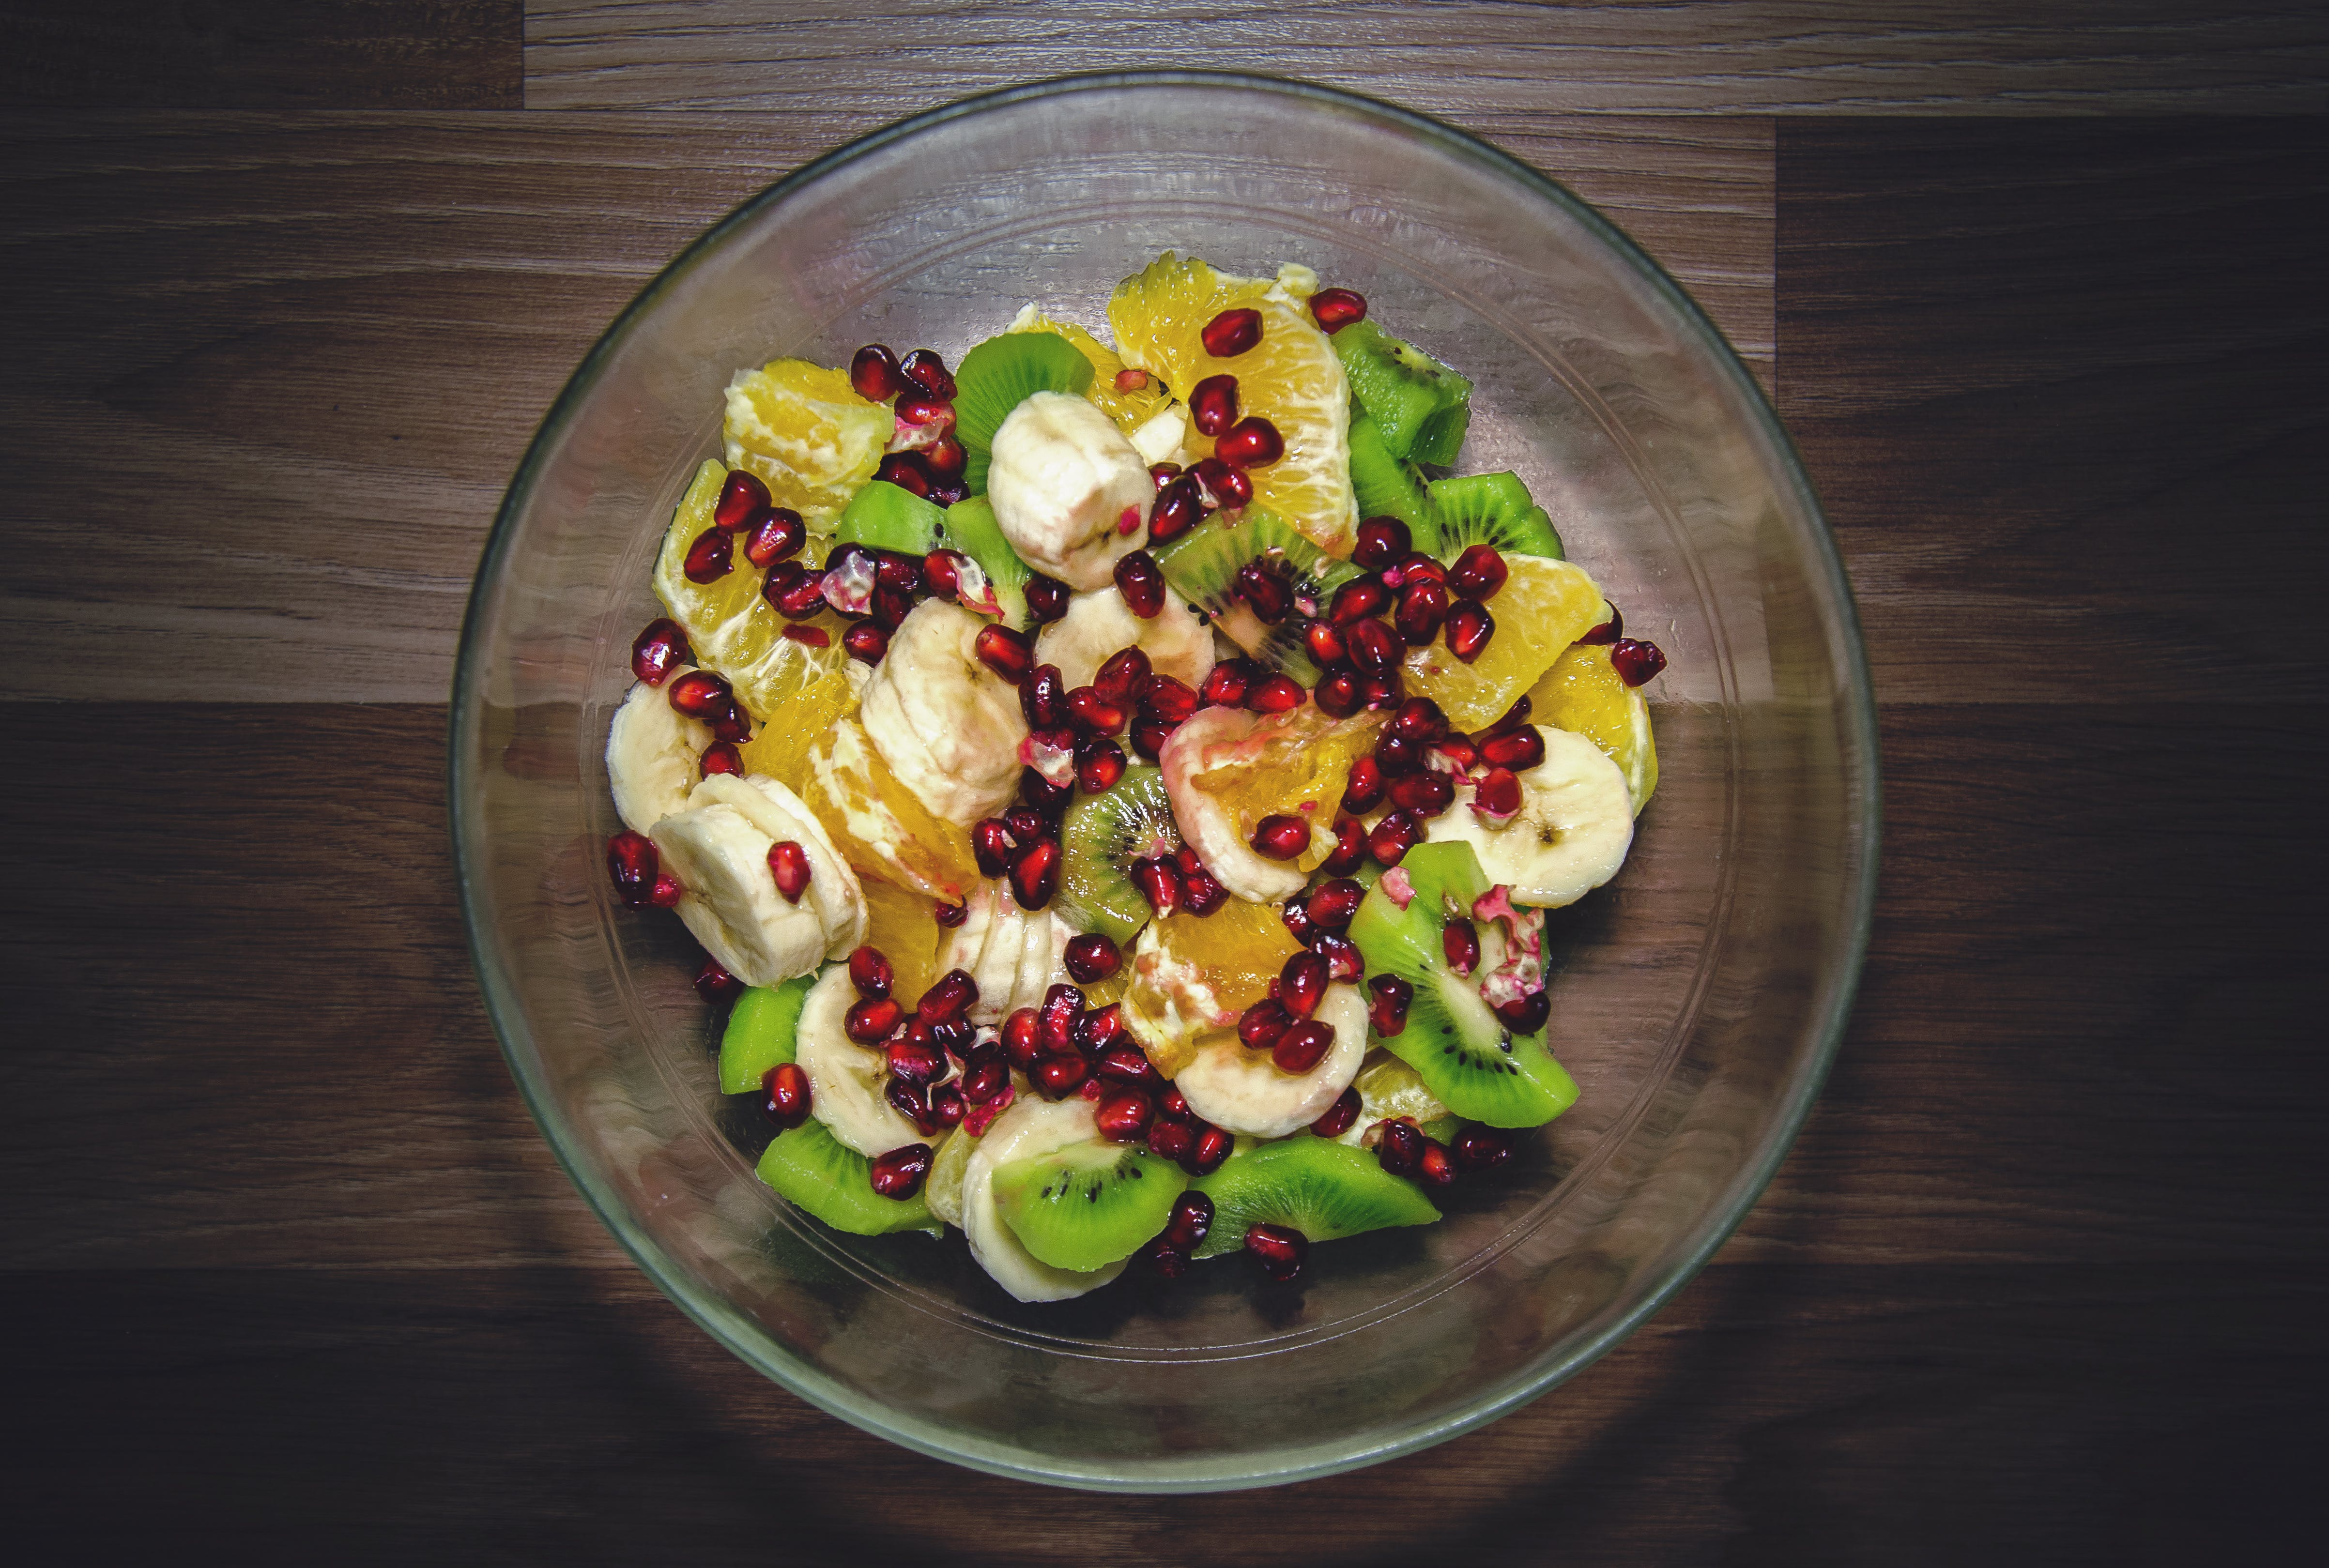 Free stock photo of food, salad, fruits, colorful